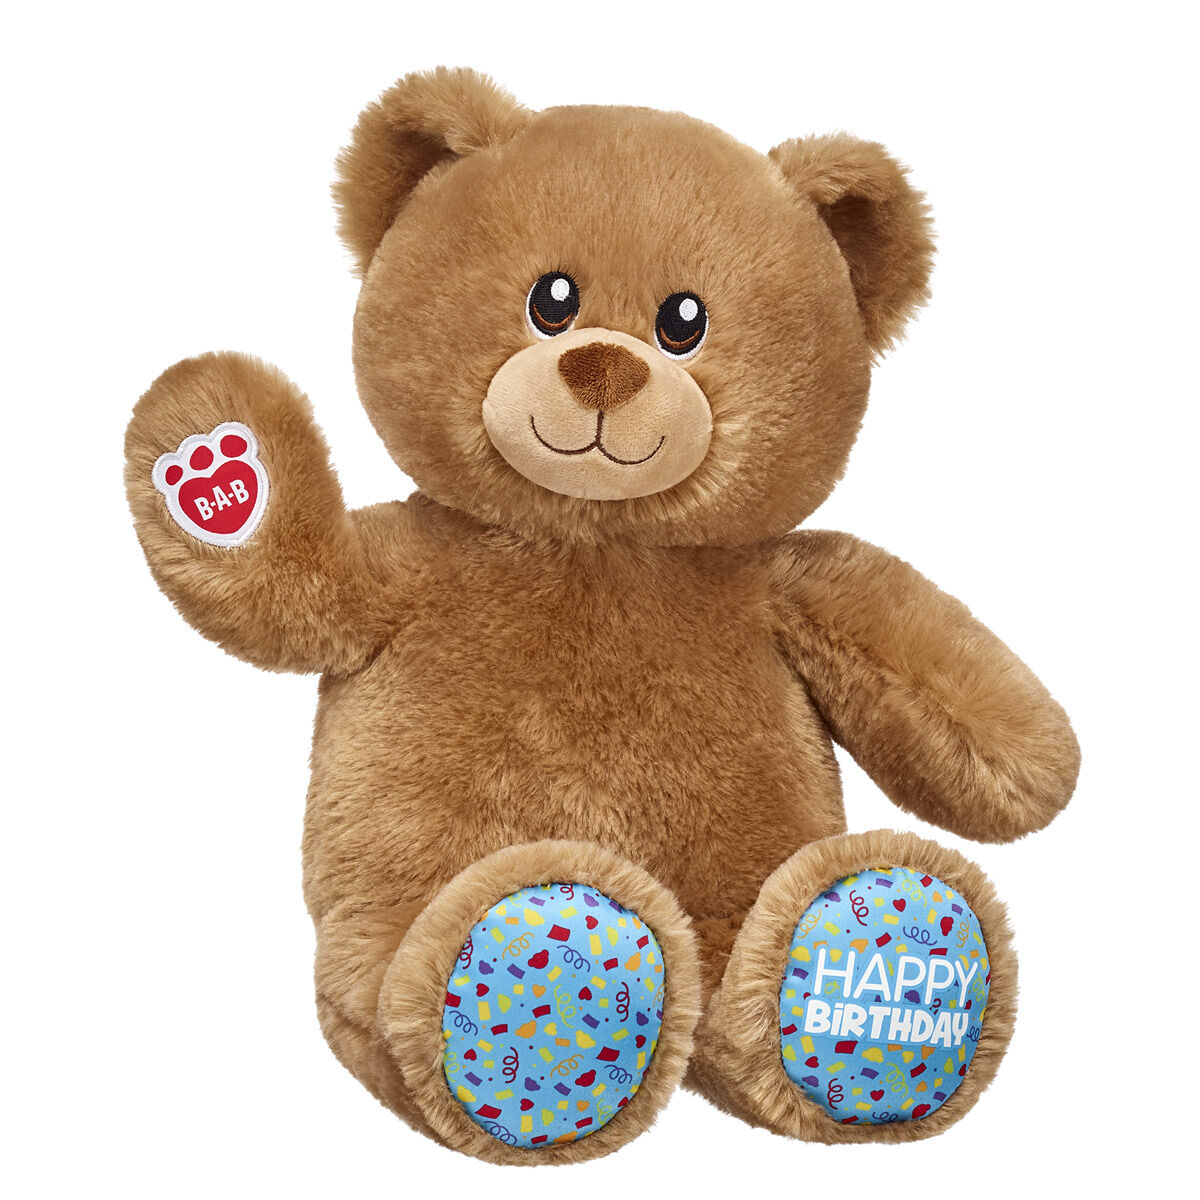 Teddys Build a bear